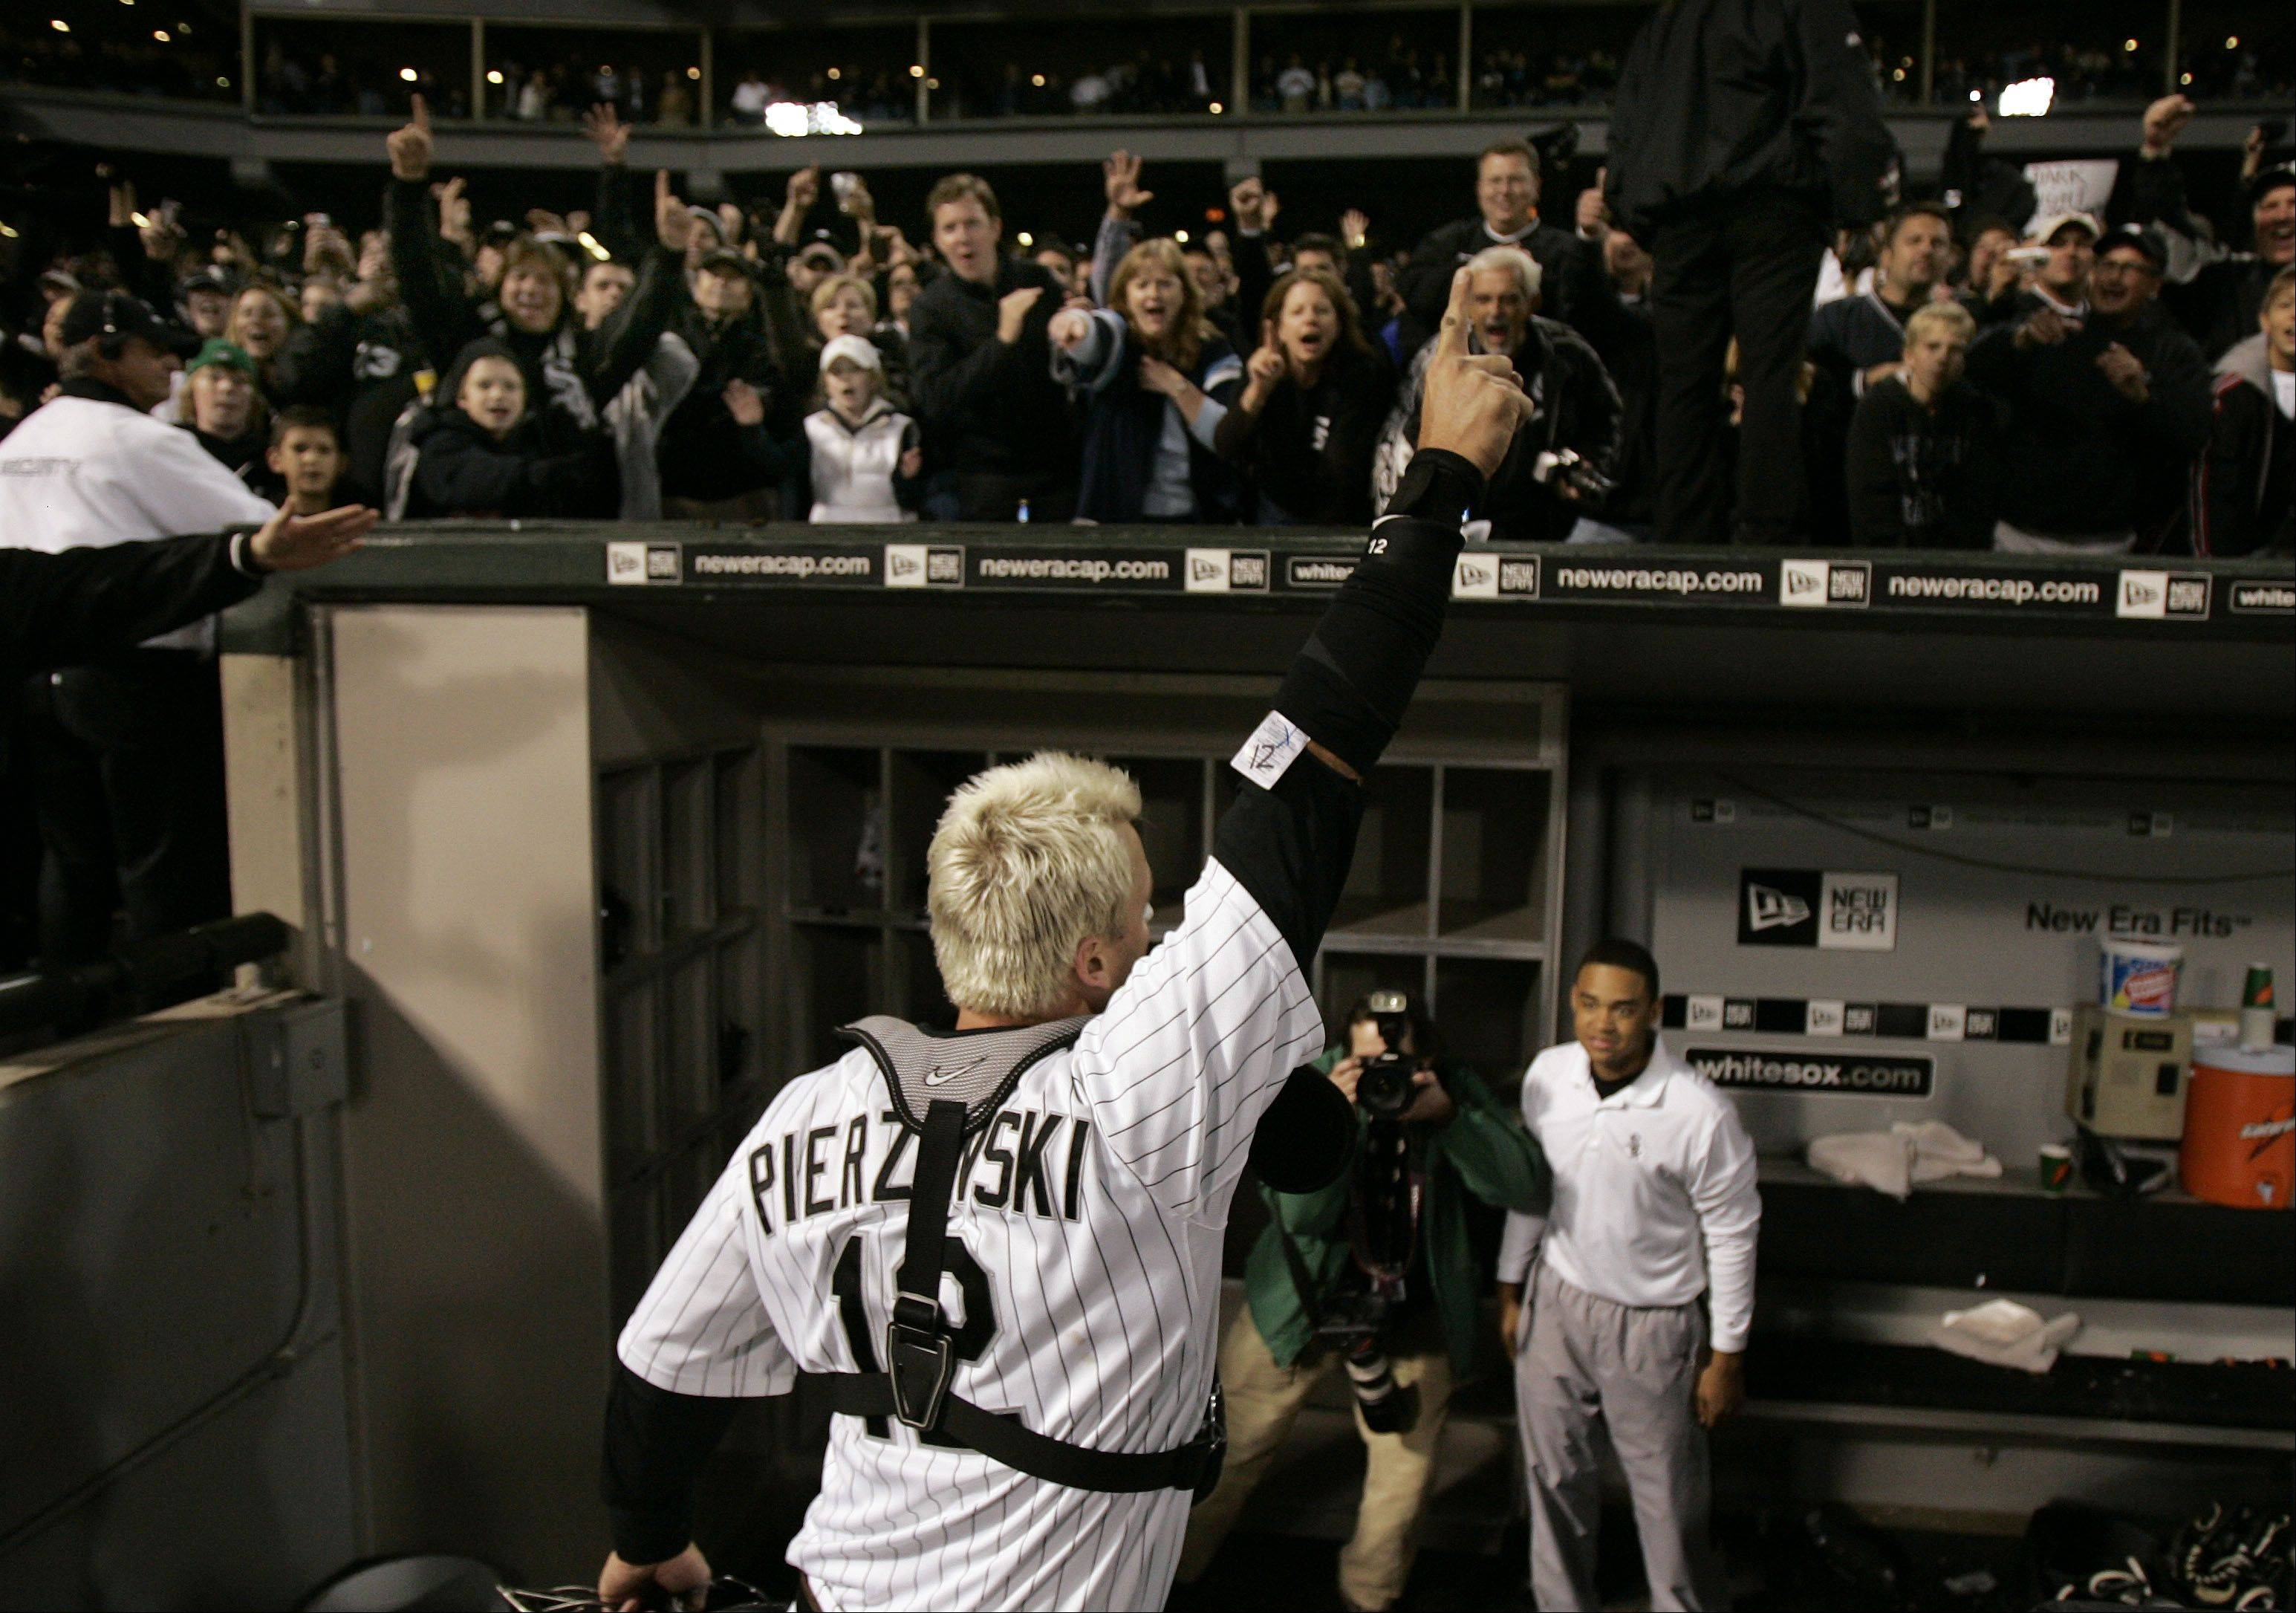 Fans cheer as A.J. Pierzynski leaves the field.